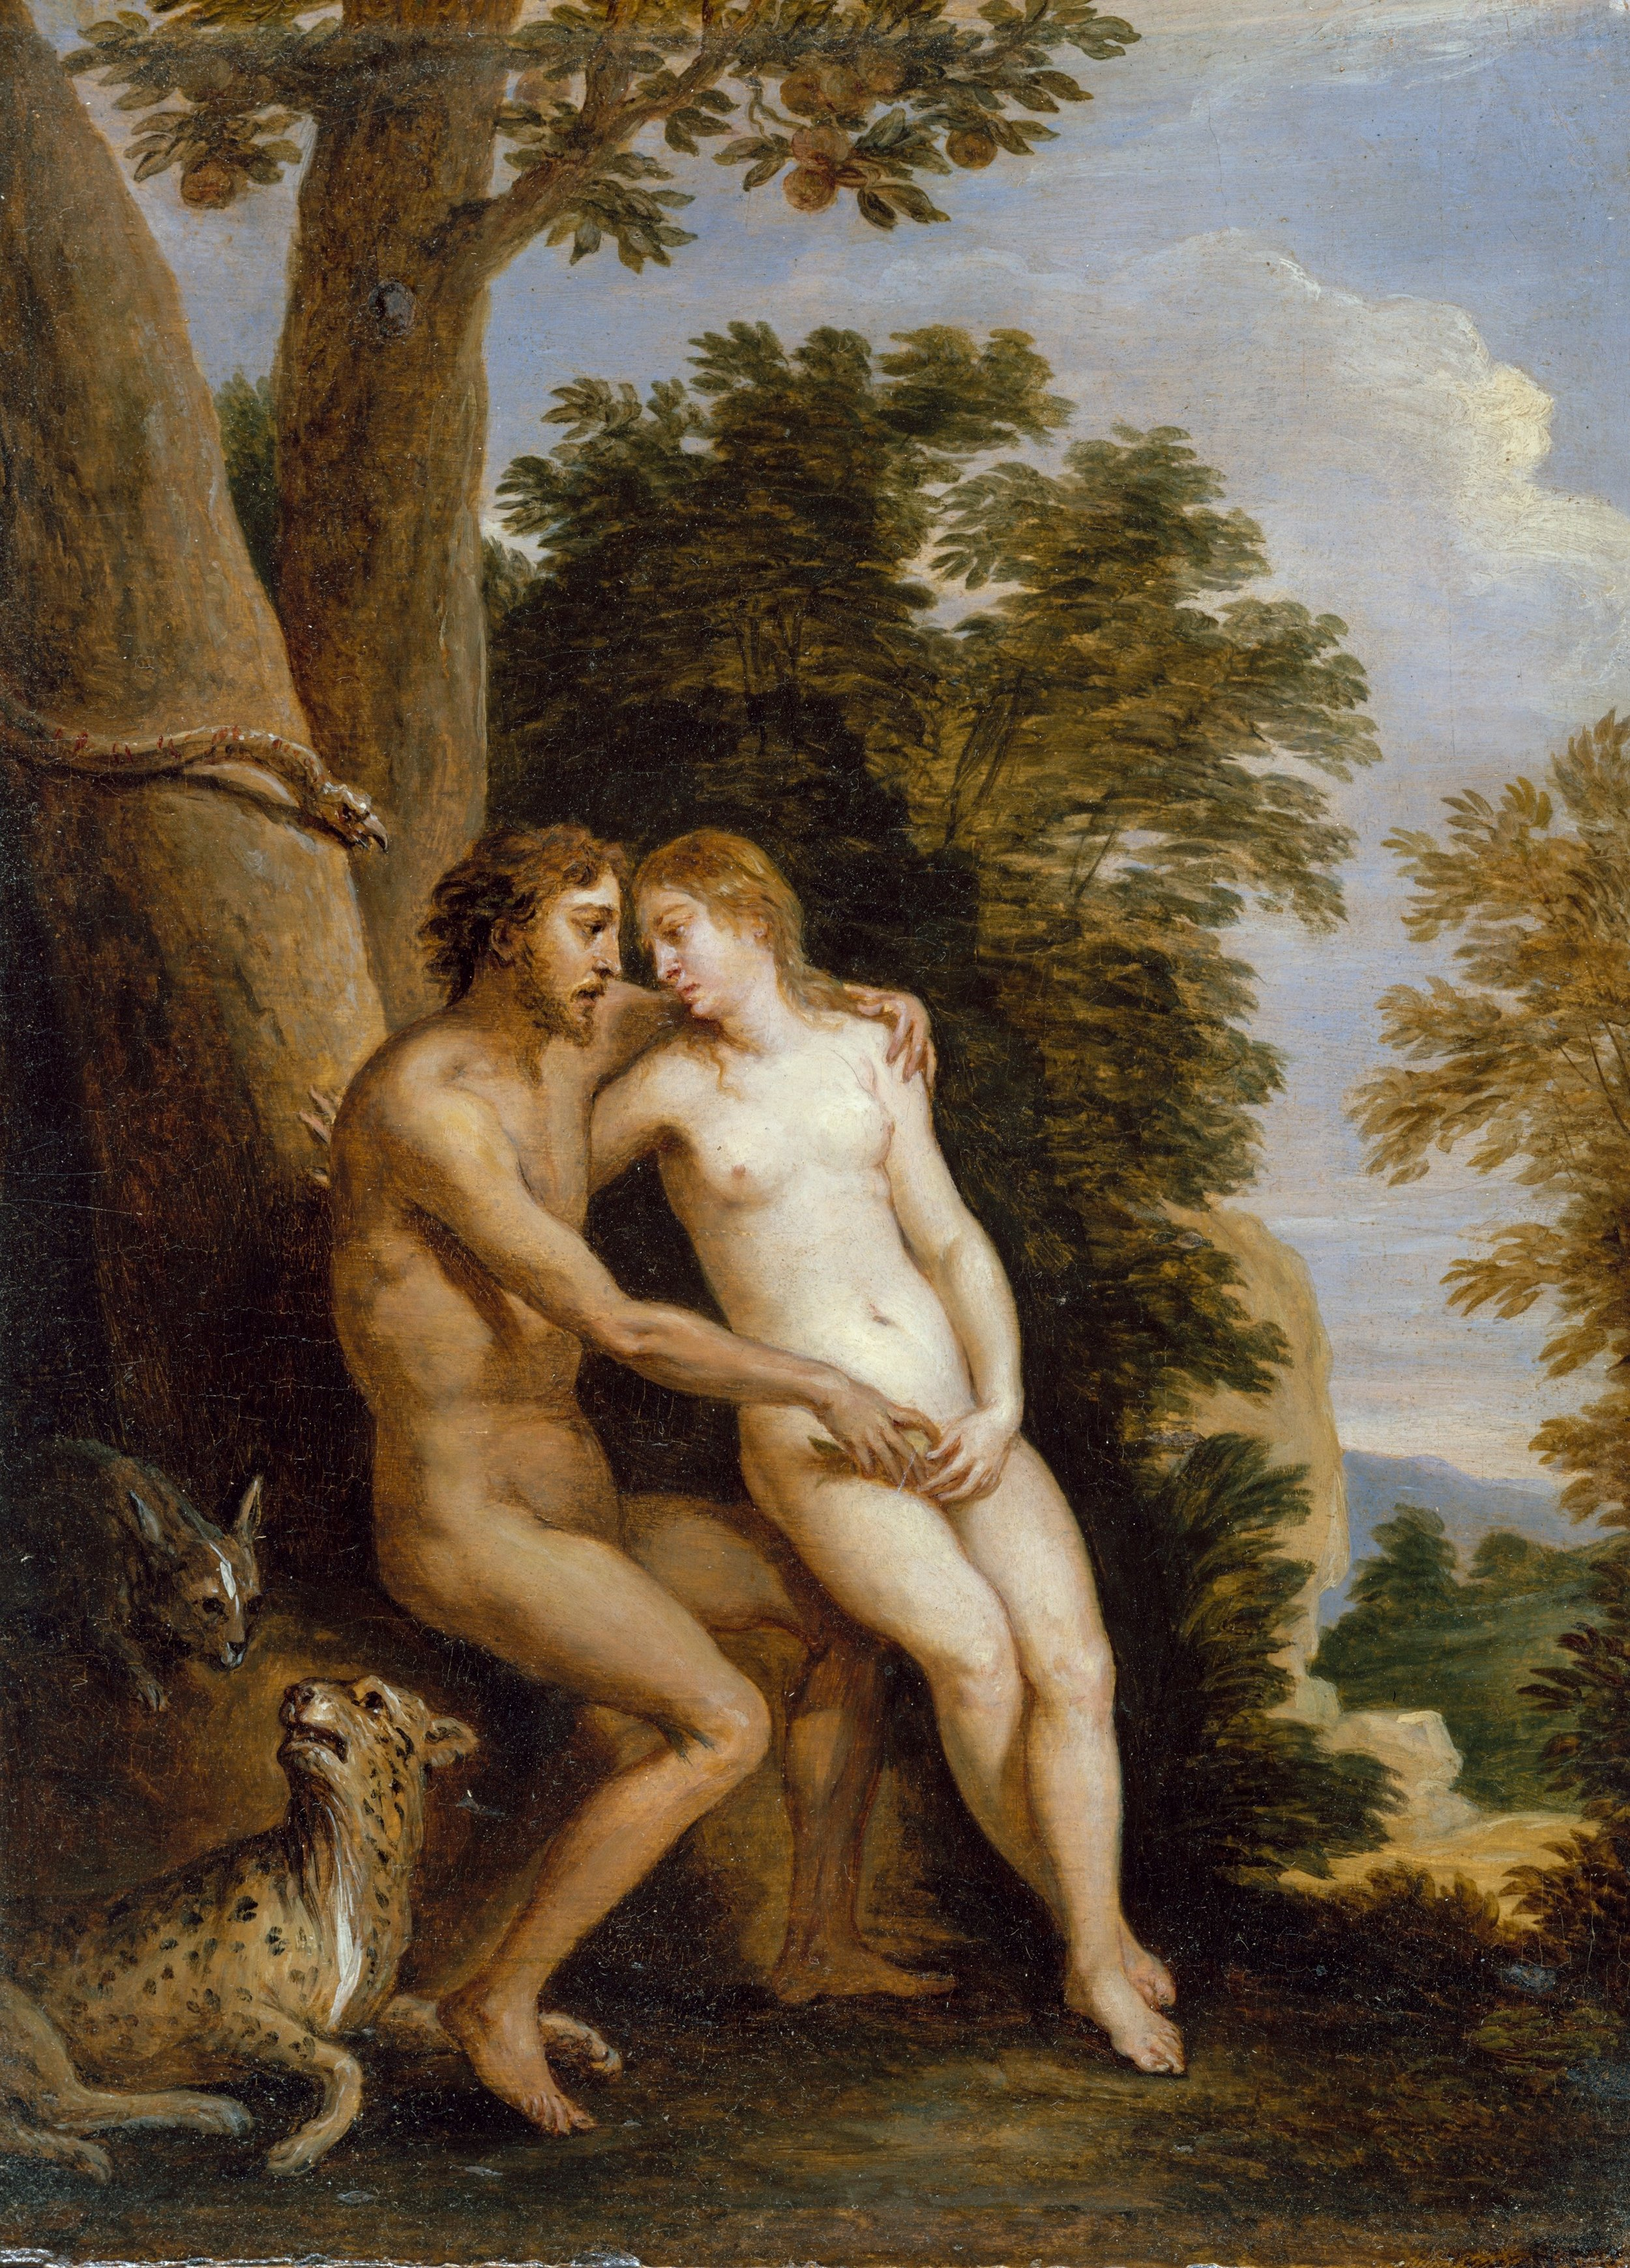 David Teniers,  Adam and Eve in Paradise  (c. 1650)